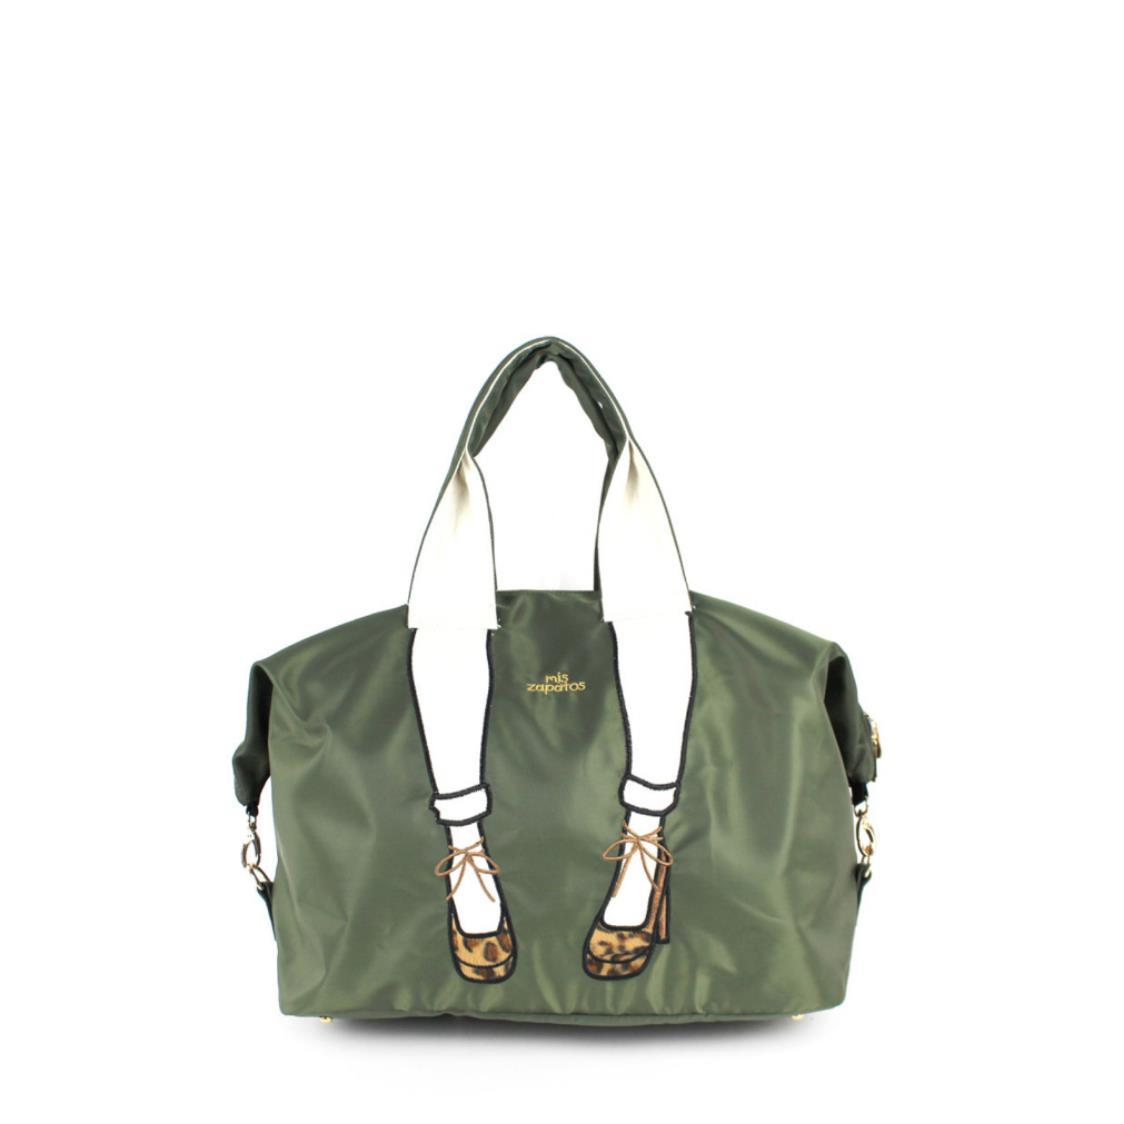 2-Way Use Jeans with High Heels Travel Bag Khaki